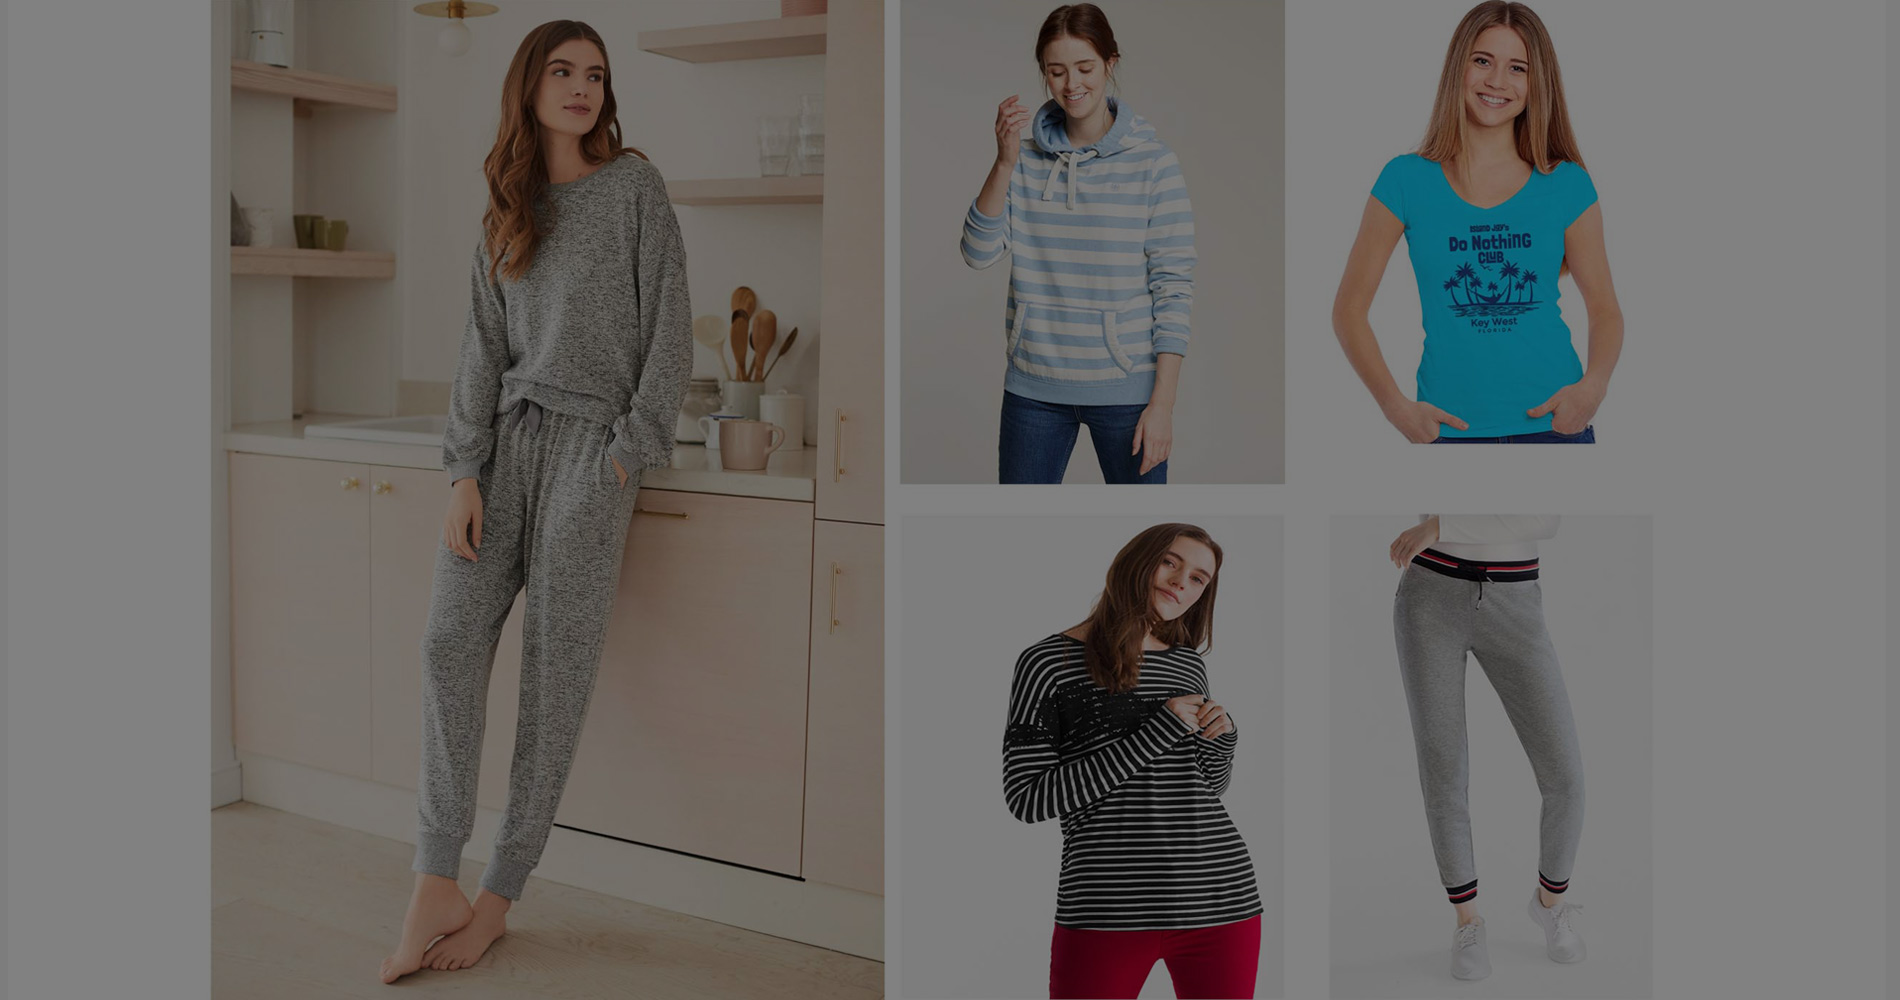 Lahore Fashions | Manufacturer & Exporter all kinds of Knitted Garments